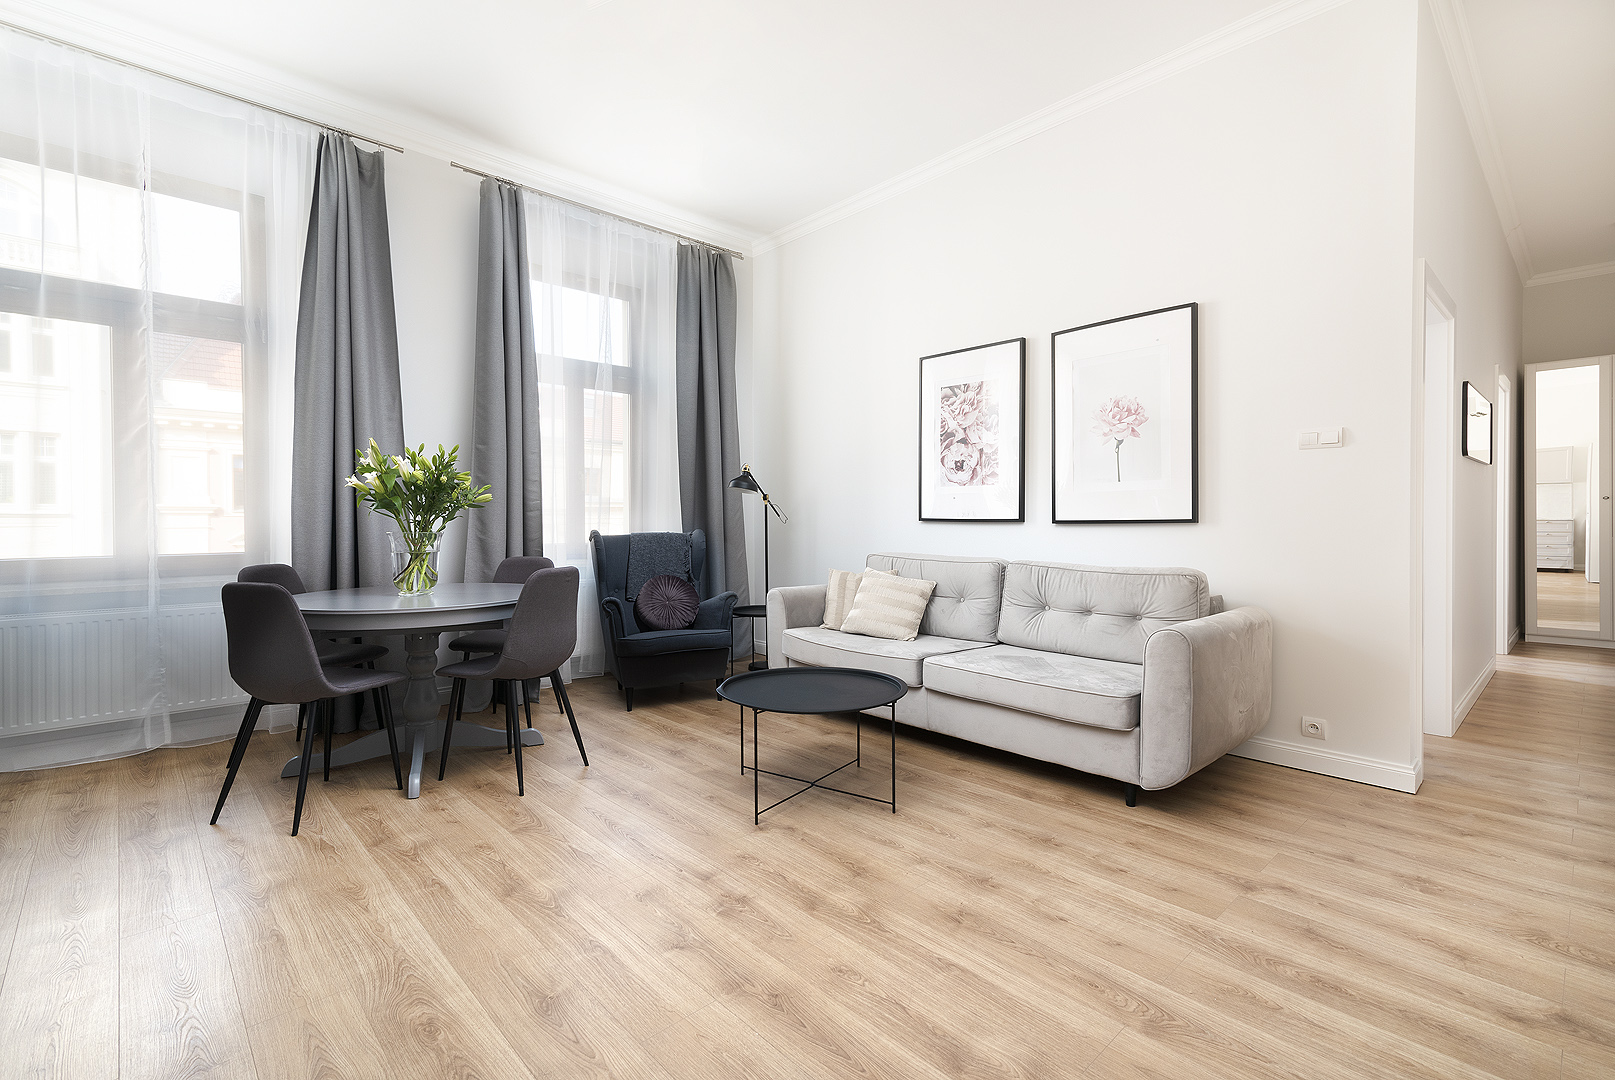 Royal Route Residences - apartment no. 4a KP 70